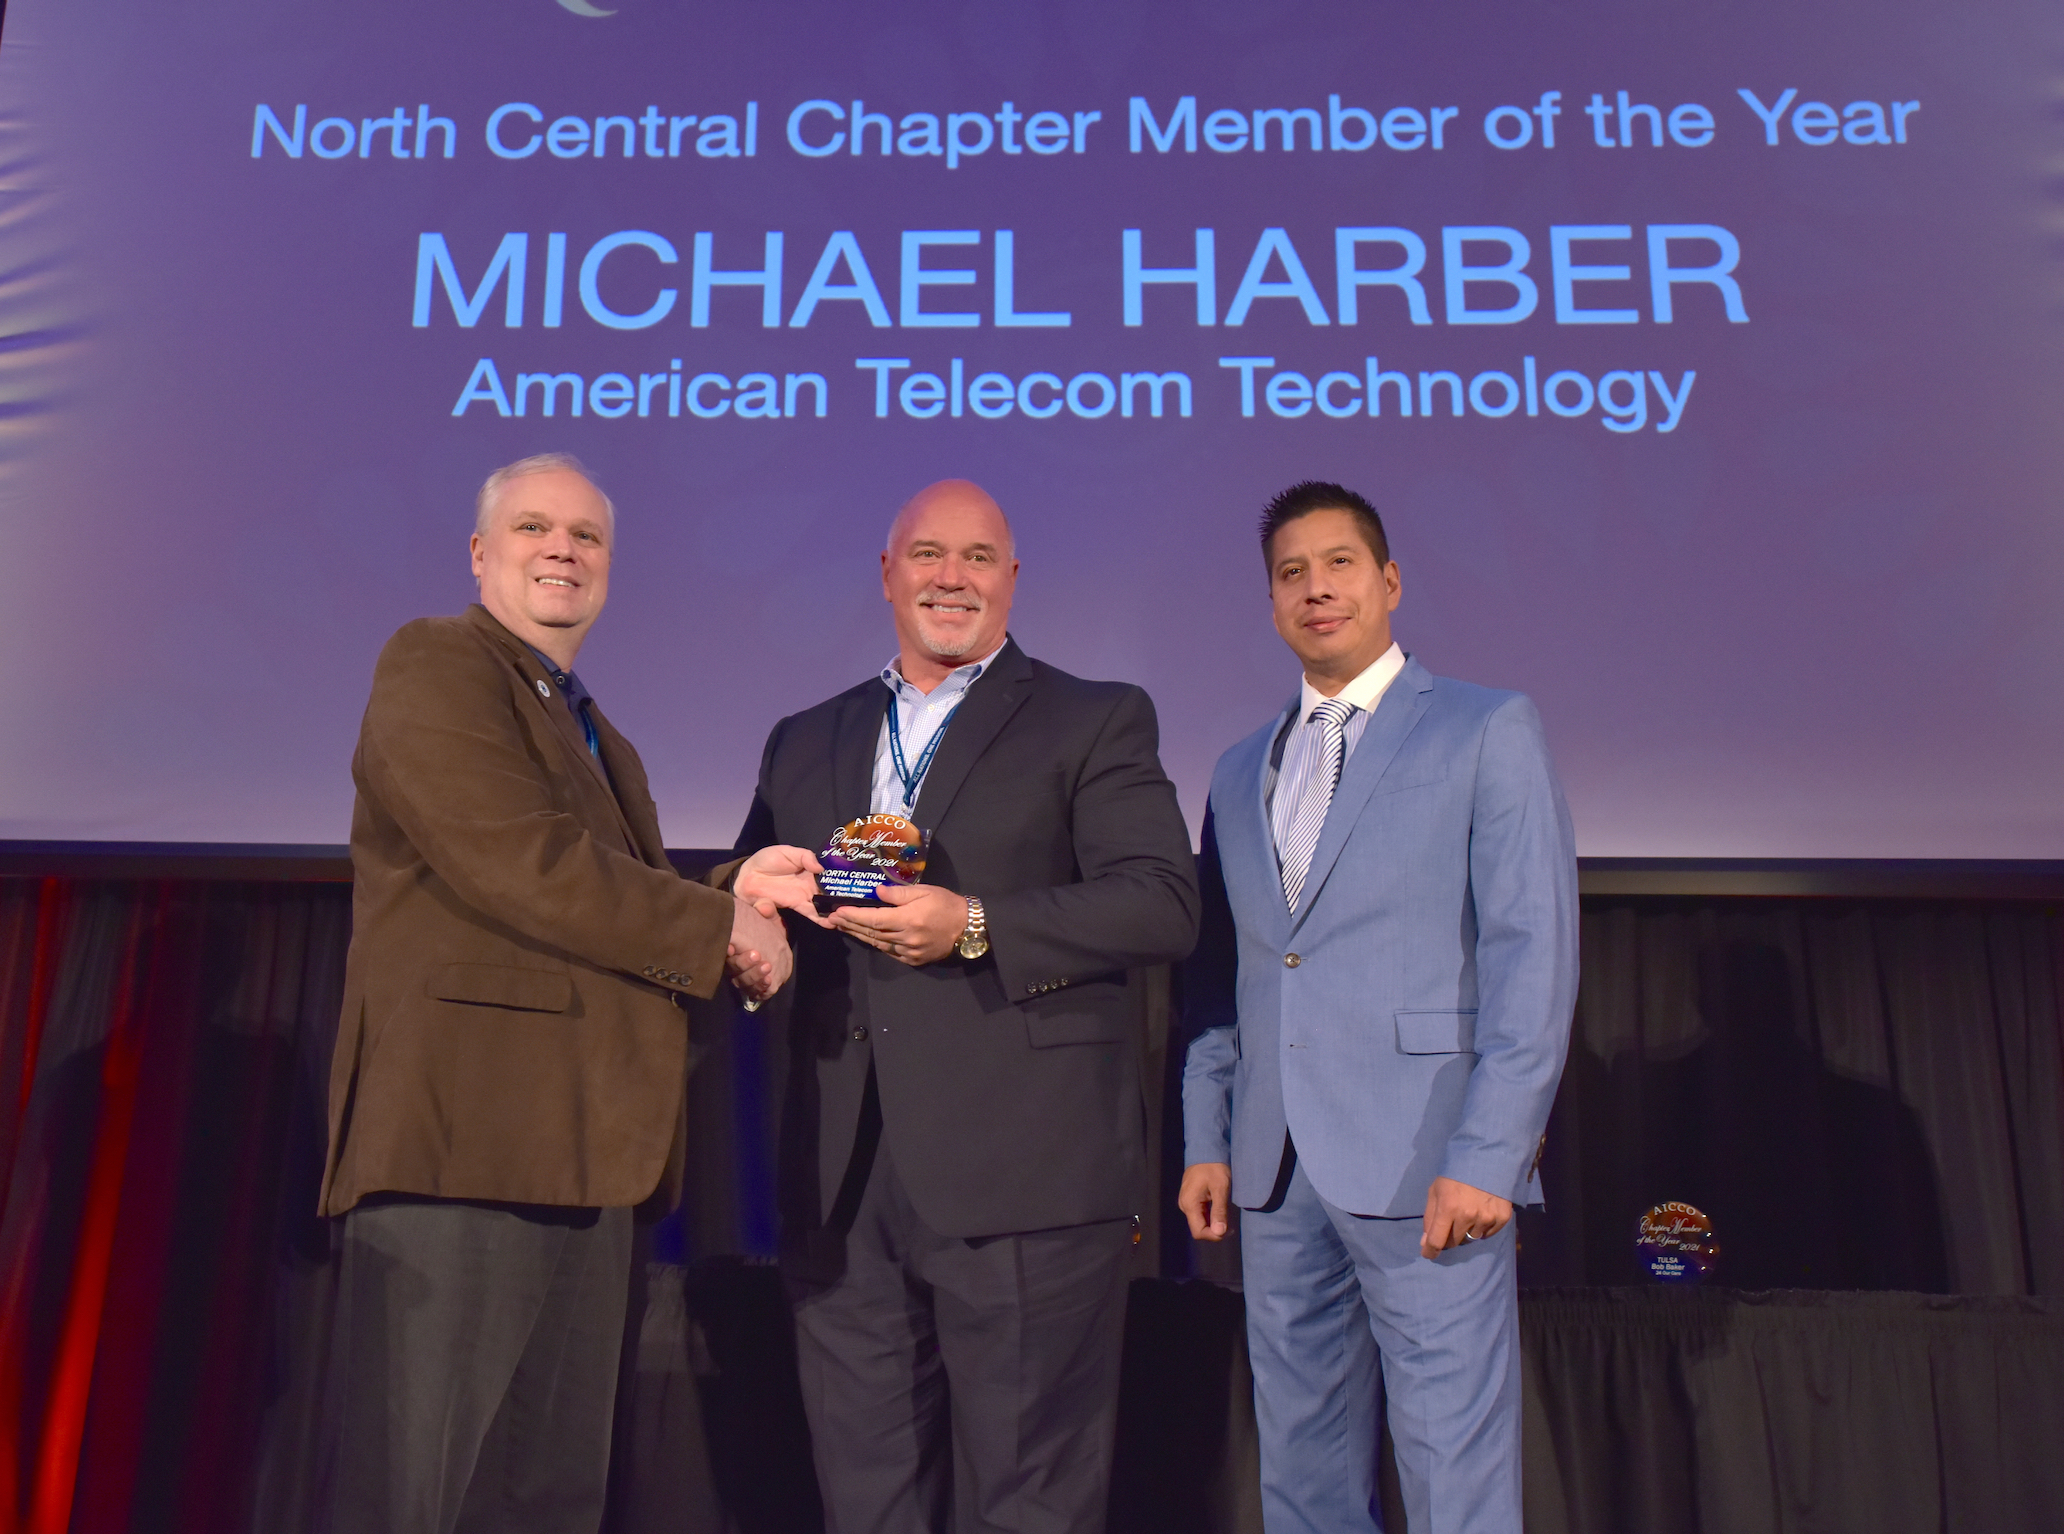 NORTH CENTRAL CHAPTER MEMBER OF THE YEAR AWARD MICHAEL HARBER / American Telecom & Technology